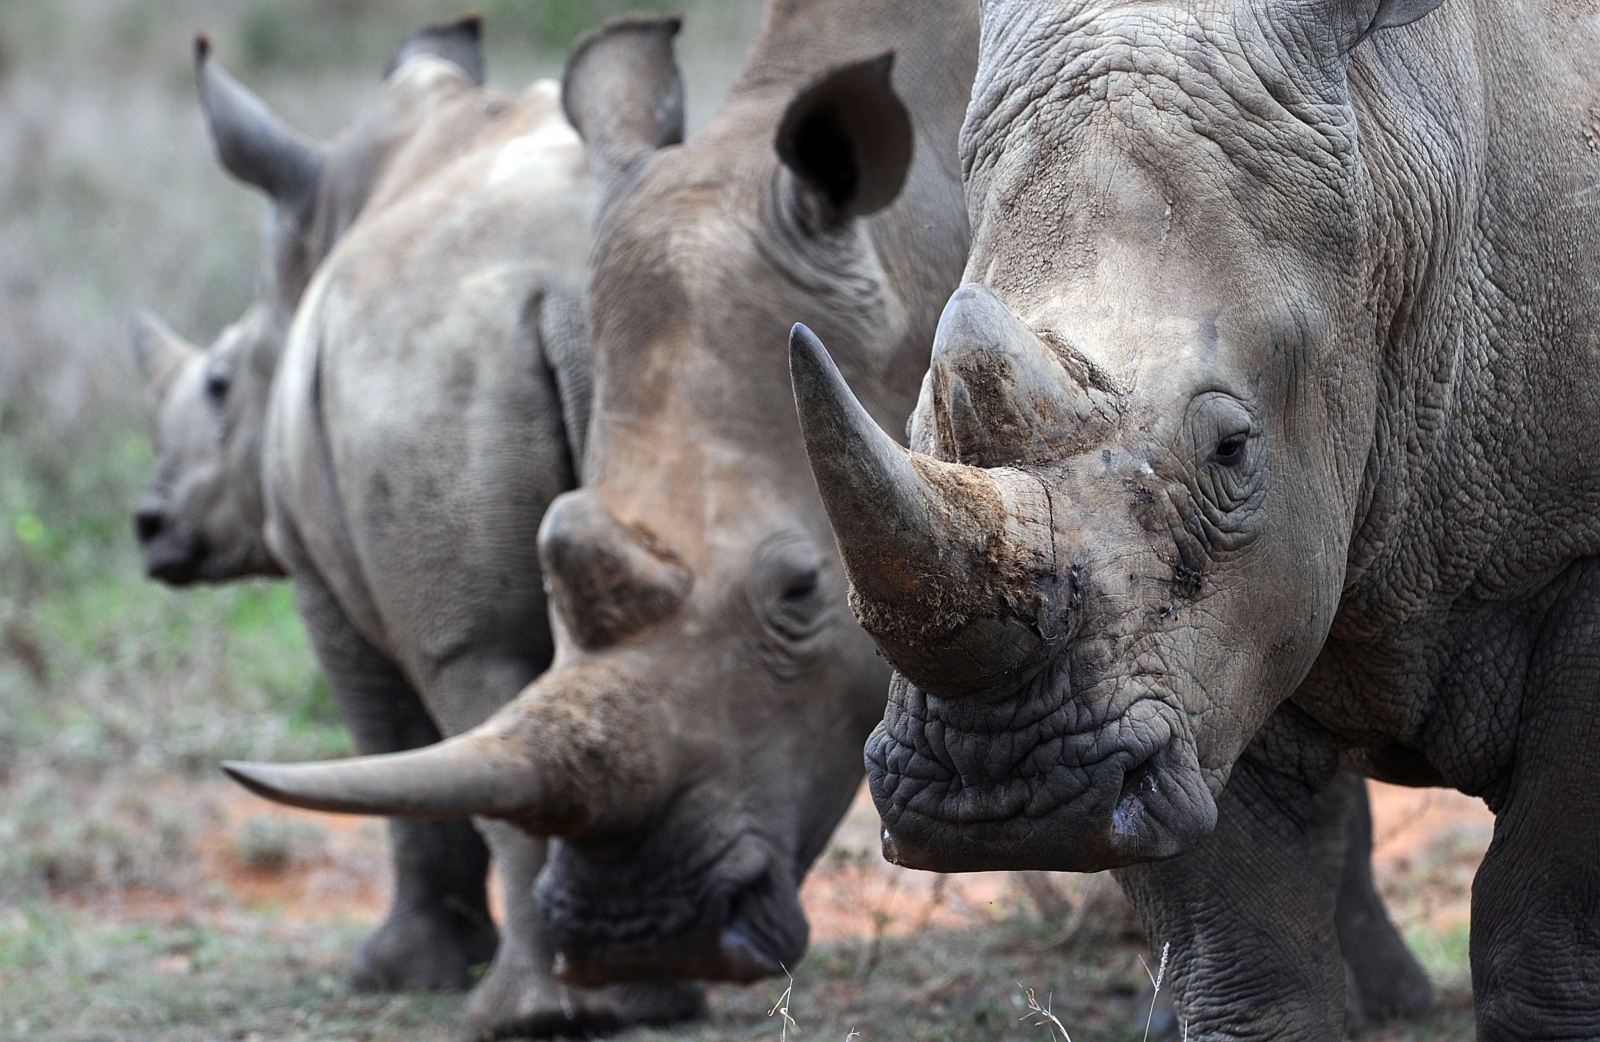 Rhino poaching in 2014: With 100 killed every month, South Africa records worst year